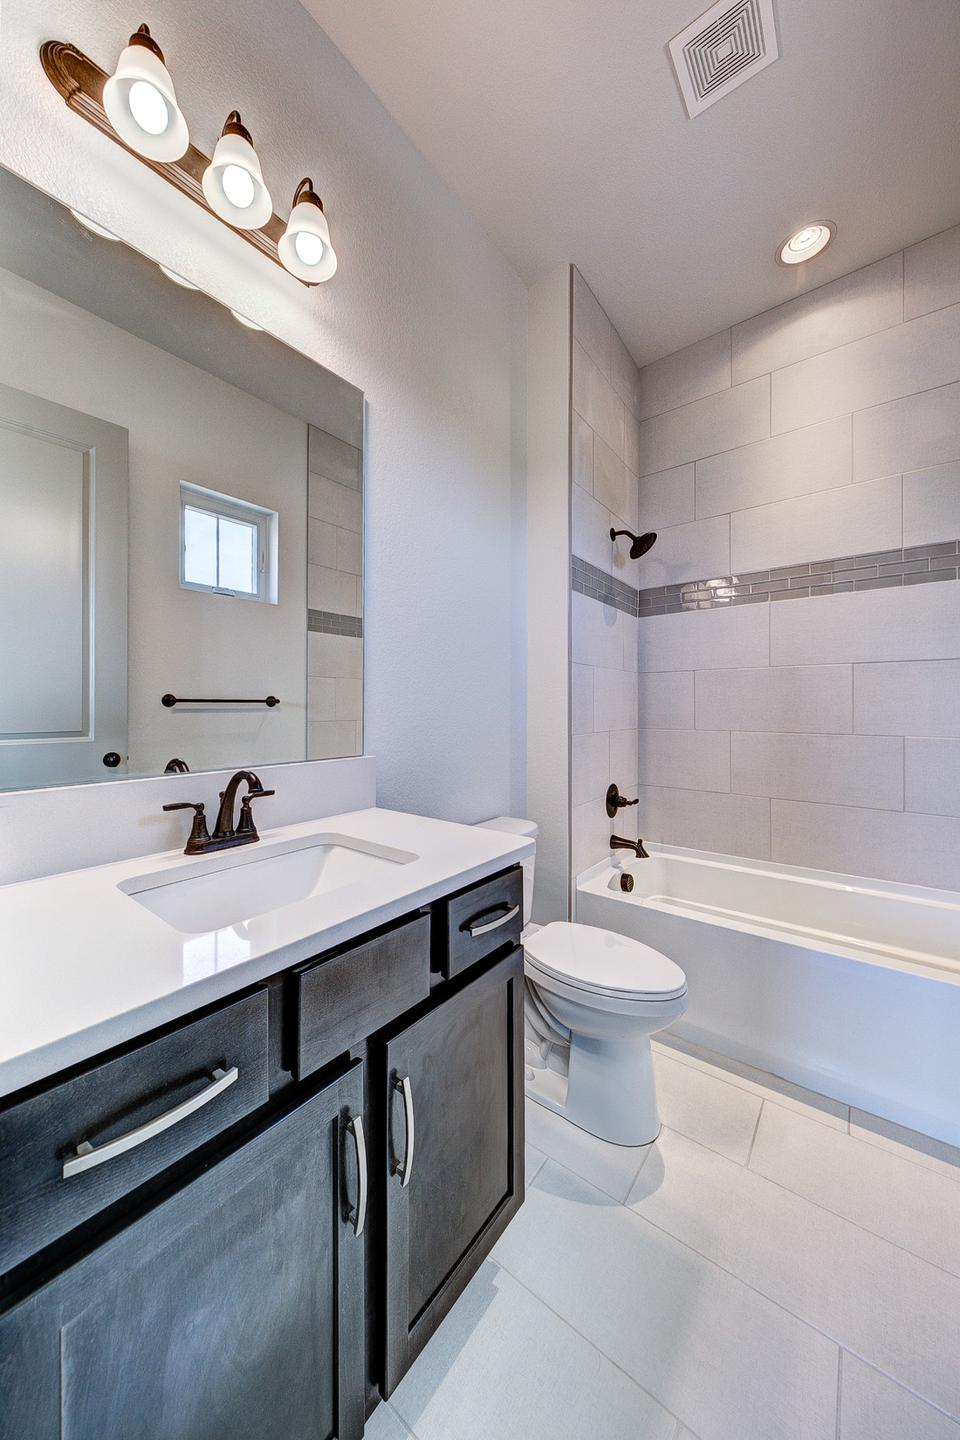 Bath 3 - Not Actual Home - Finishes Will Vary